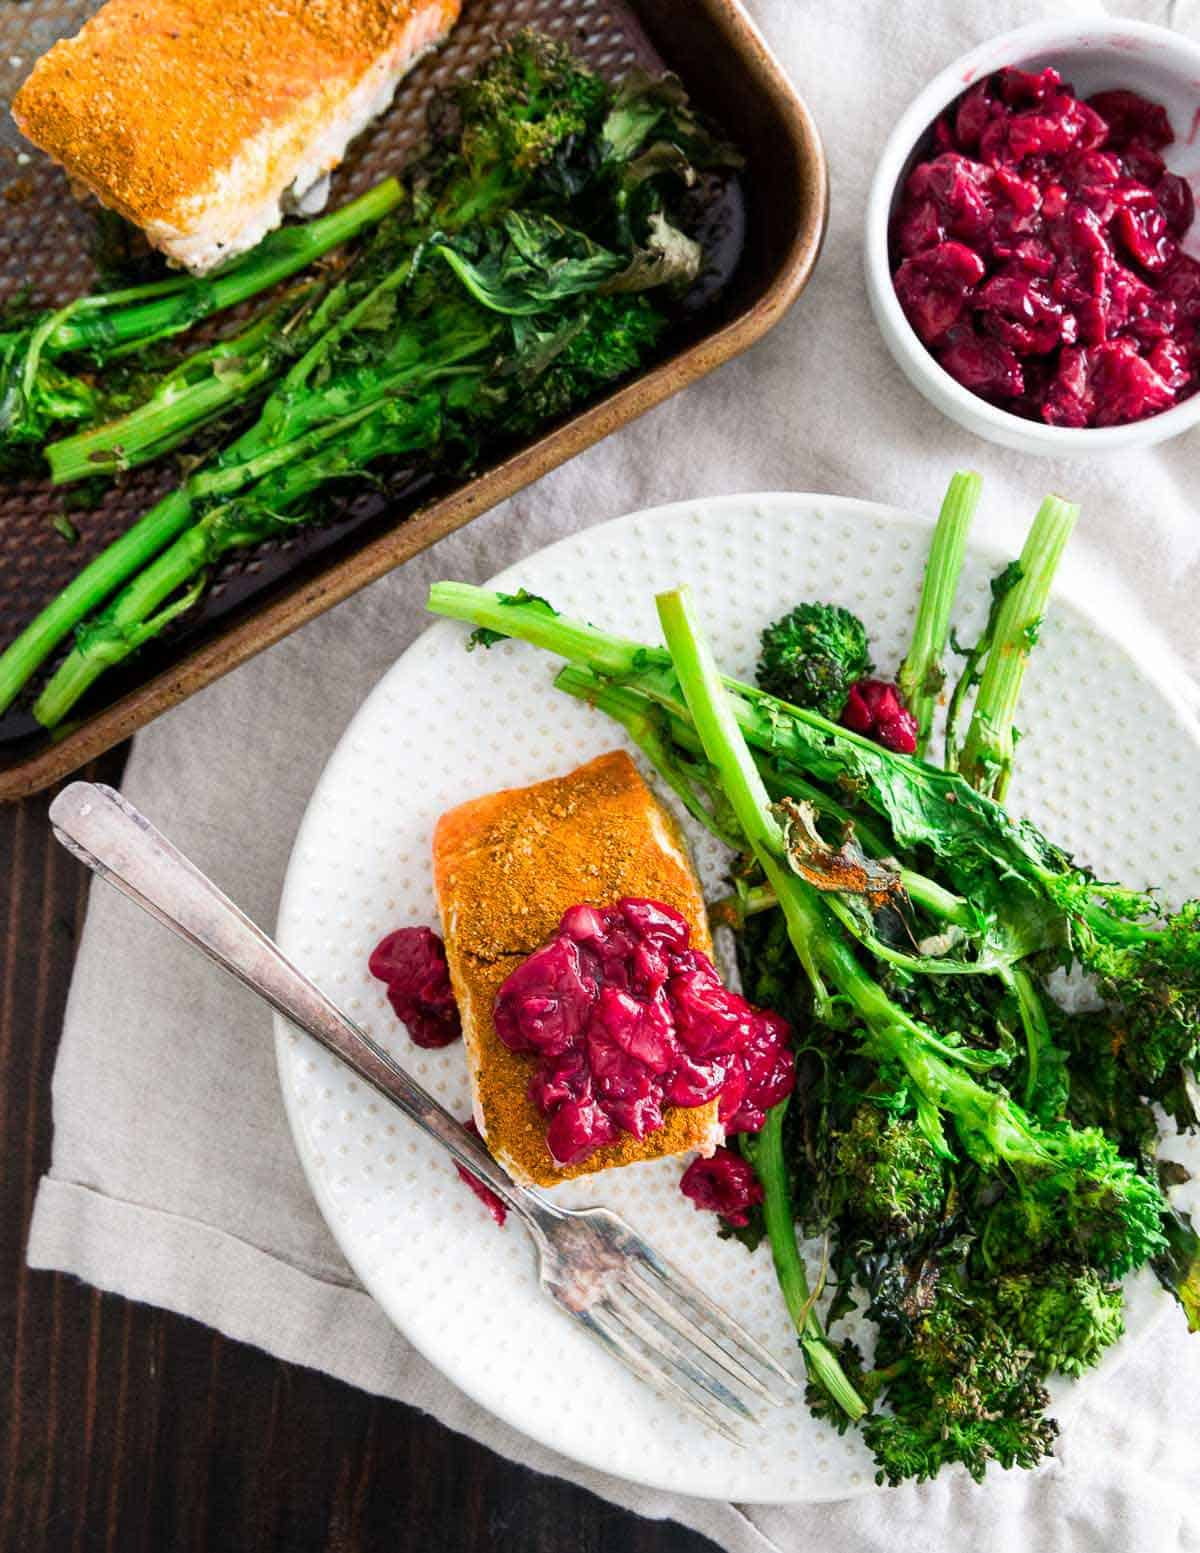 This sheet pan turmeric salmon with a quick garlic cherry sauce and roasted broccoli is a wholesome, healthy and anti-inflammatory dinner recipe that's super easy to put together.